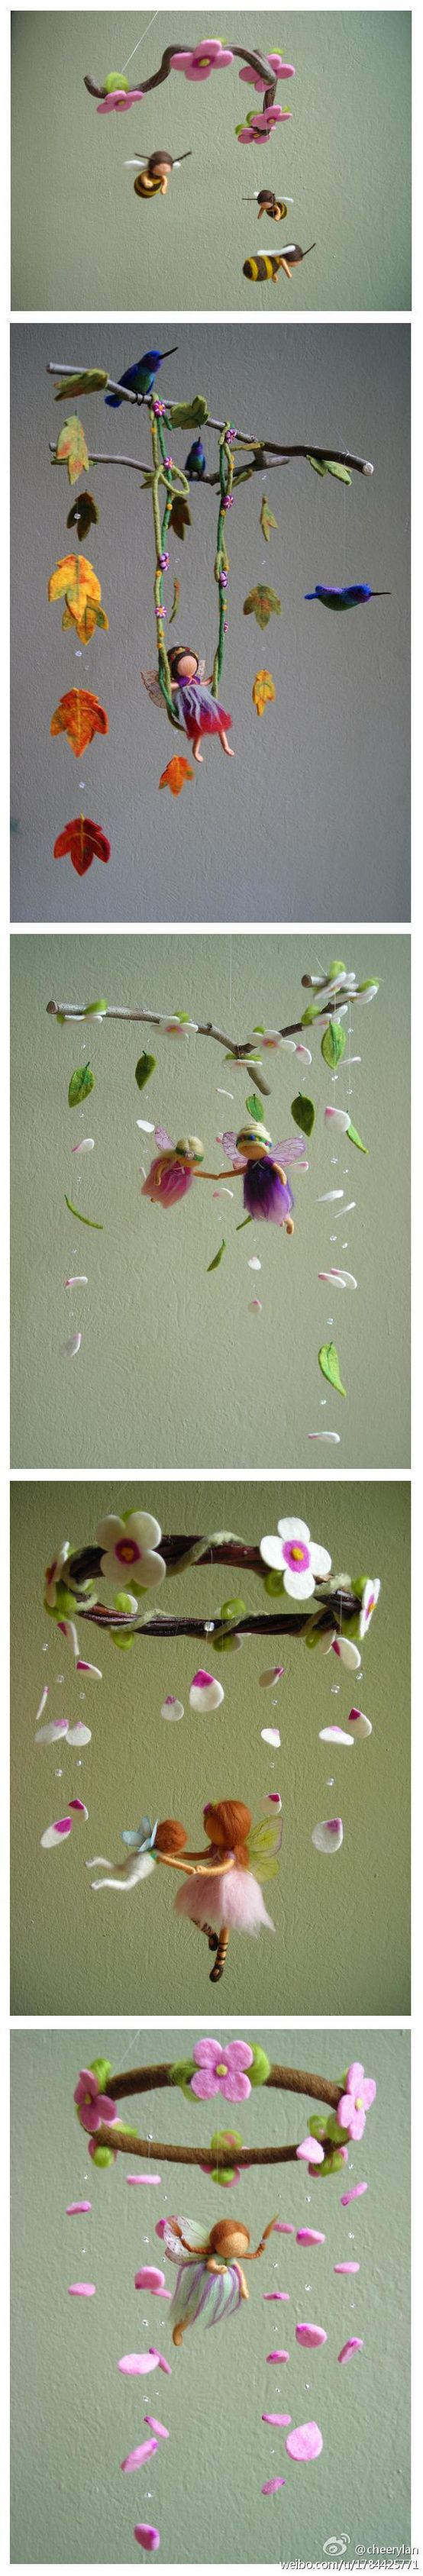 Fairy mobiles with flowers and leaves | What an adorable #handmade #babyshower gift idea! To make, or to buy from a WAHM, right? Beautiful.